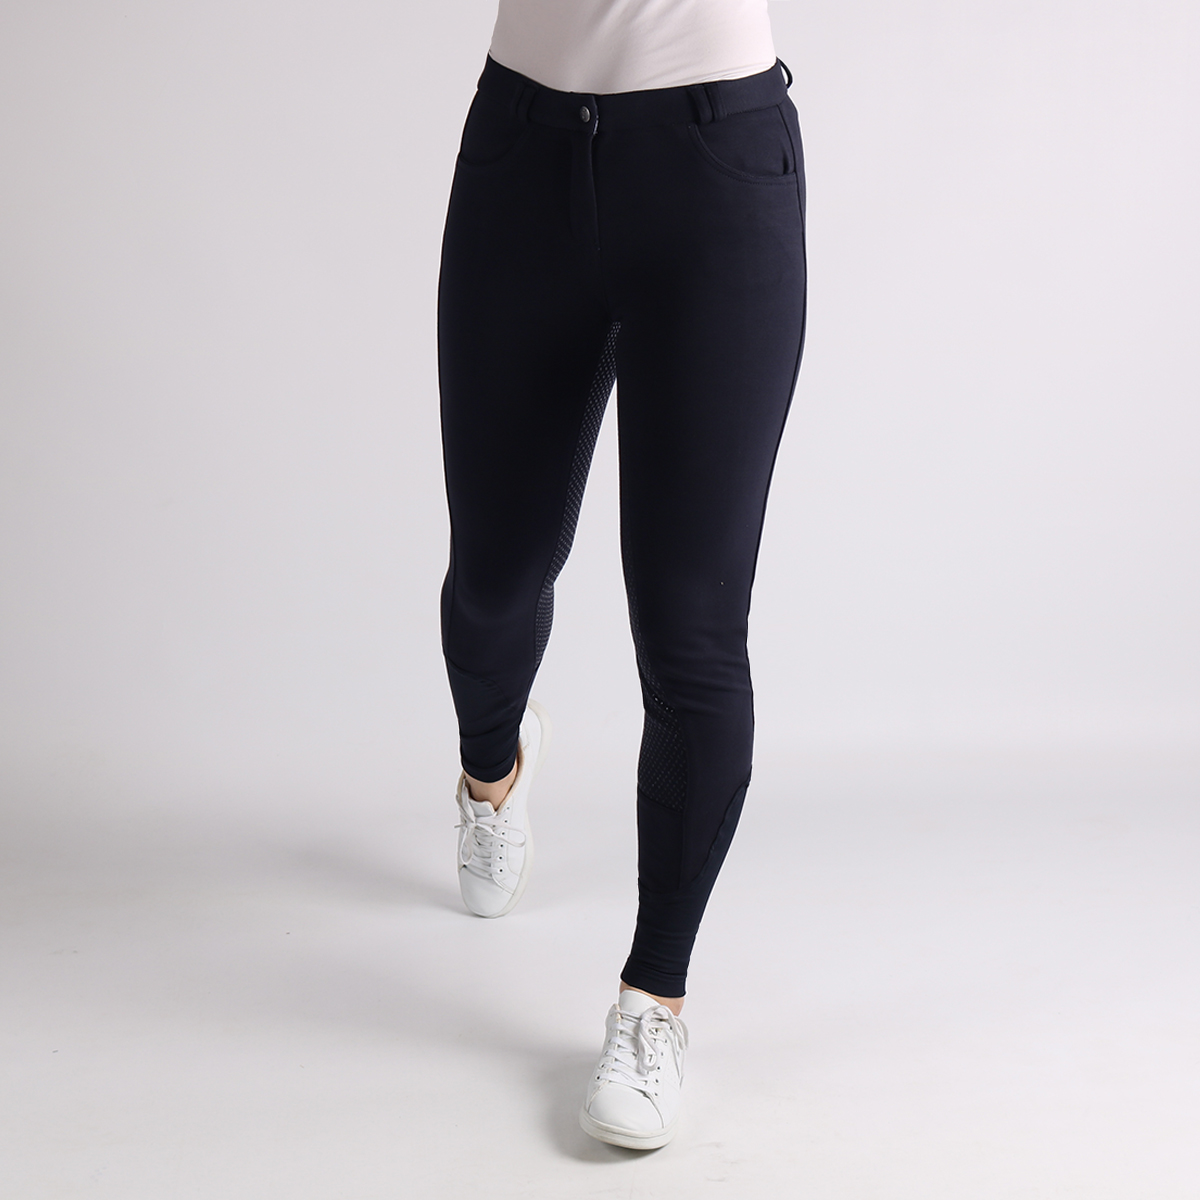 Sneakers Ariat Fuse Ss20, EU 37 - US 6,5in white